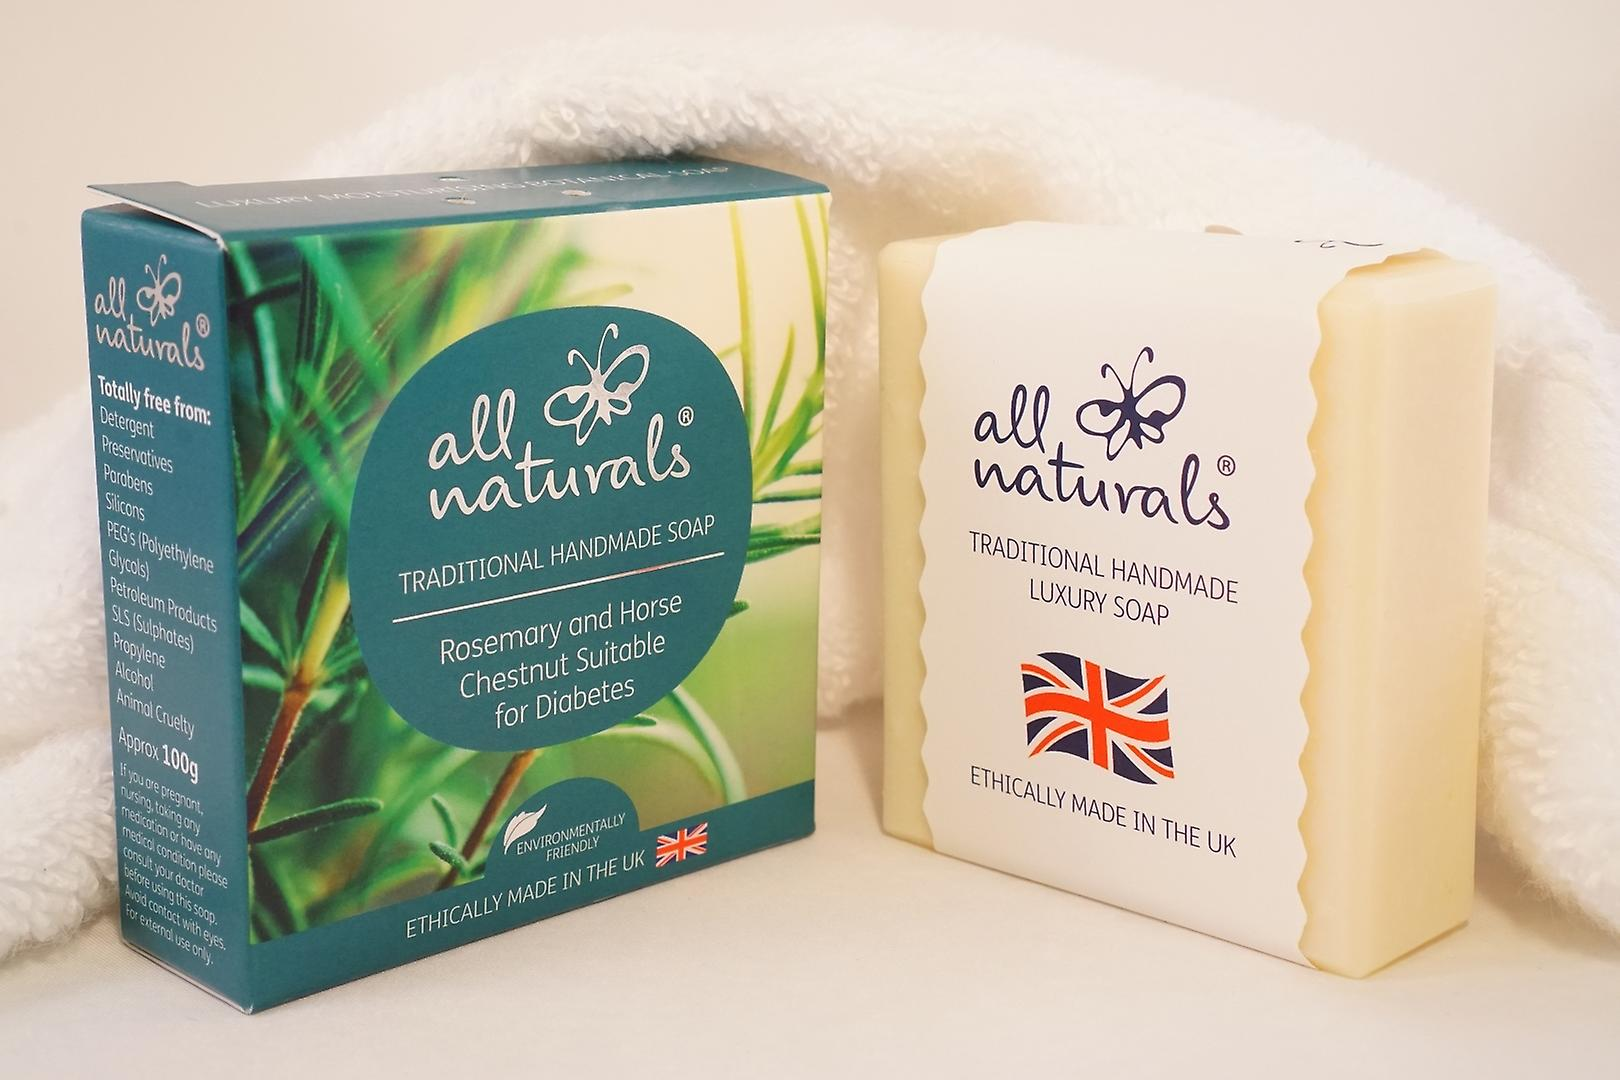 Sensitive Skin Organic Soap Gift Box with All Natural Soaps 400g.